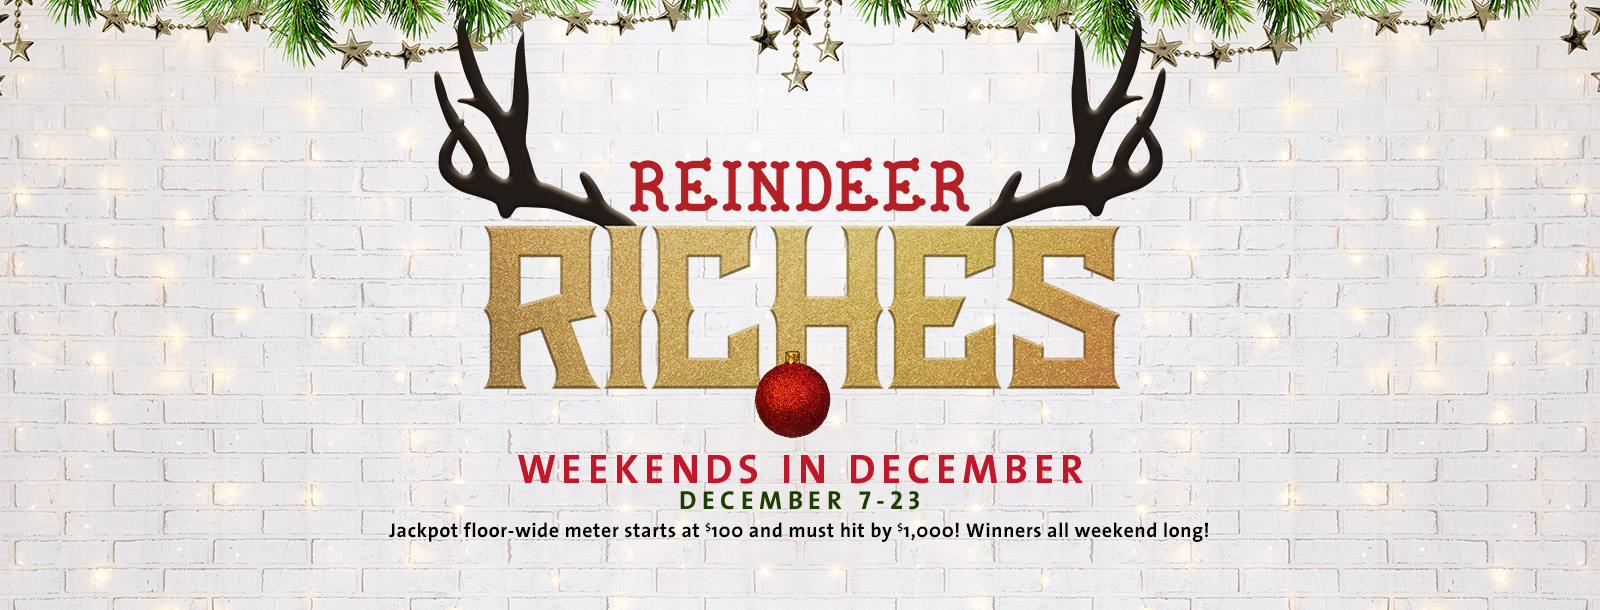 reindeer riches